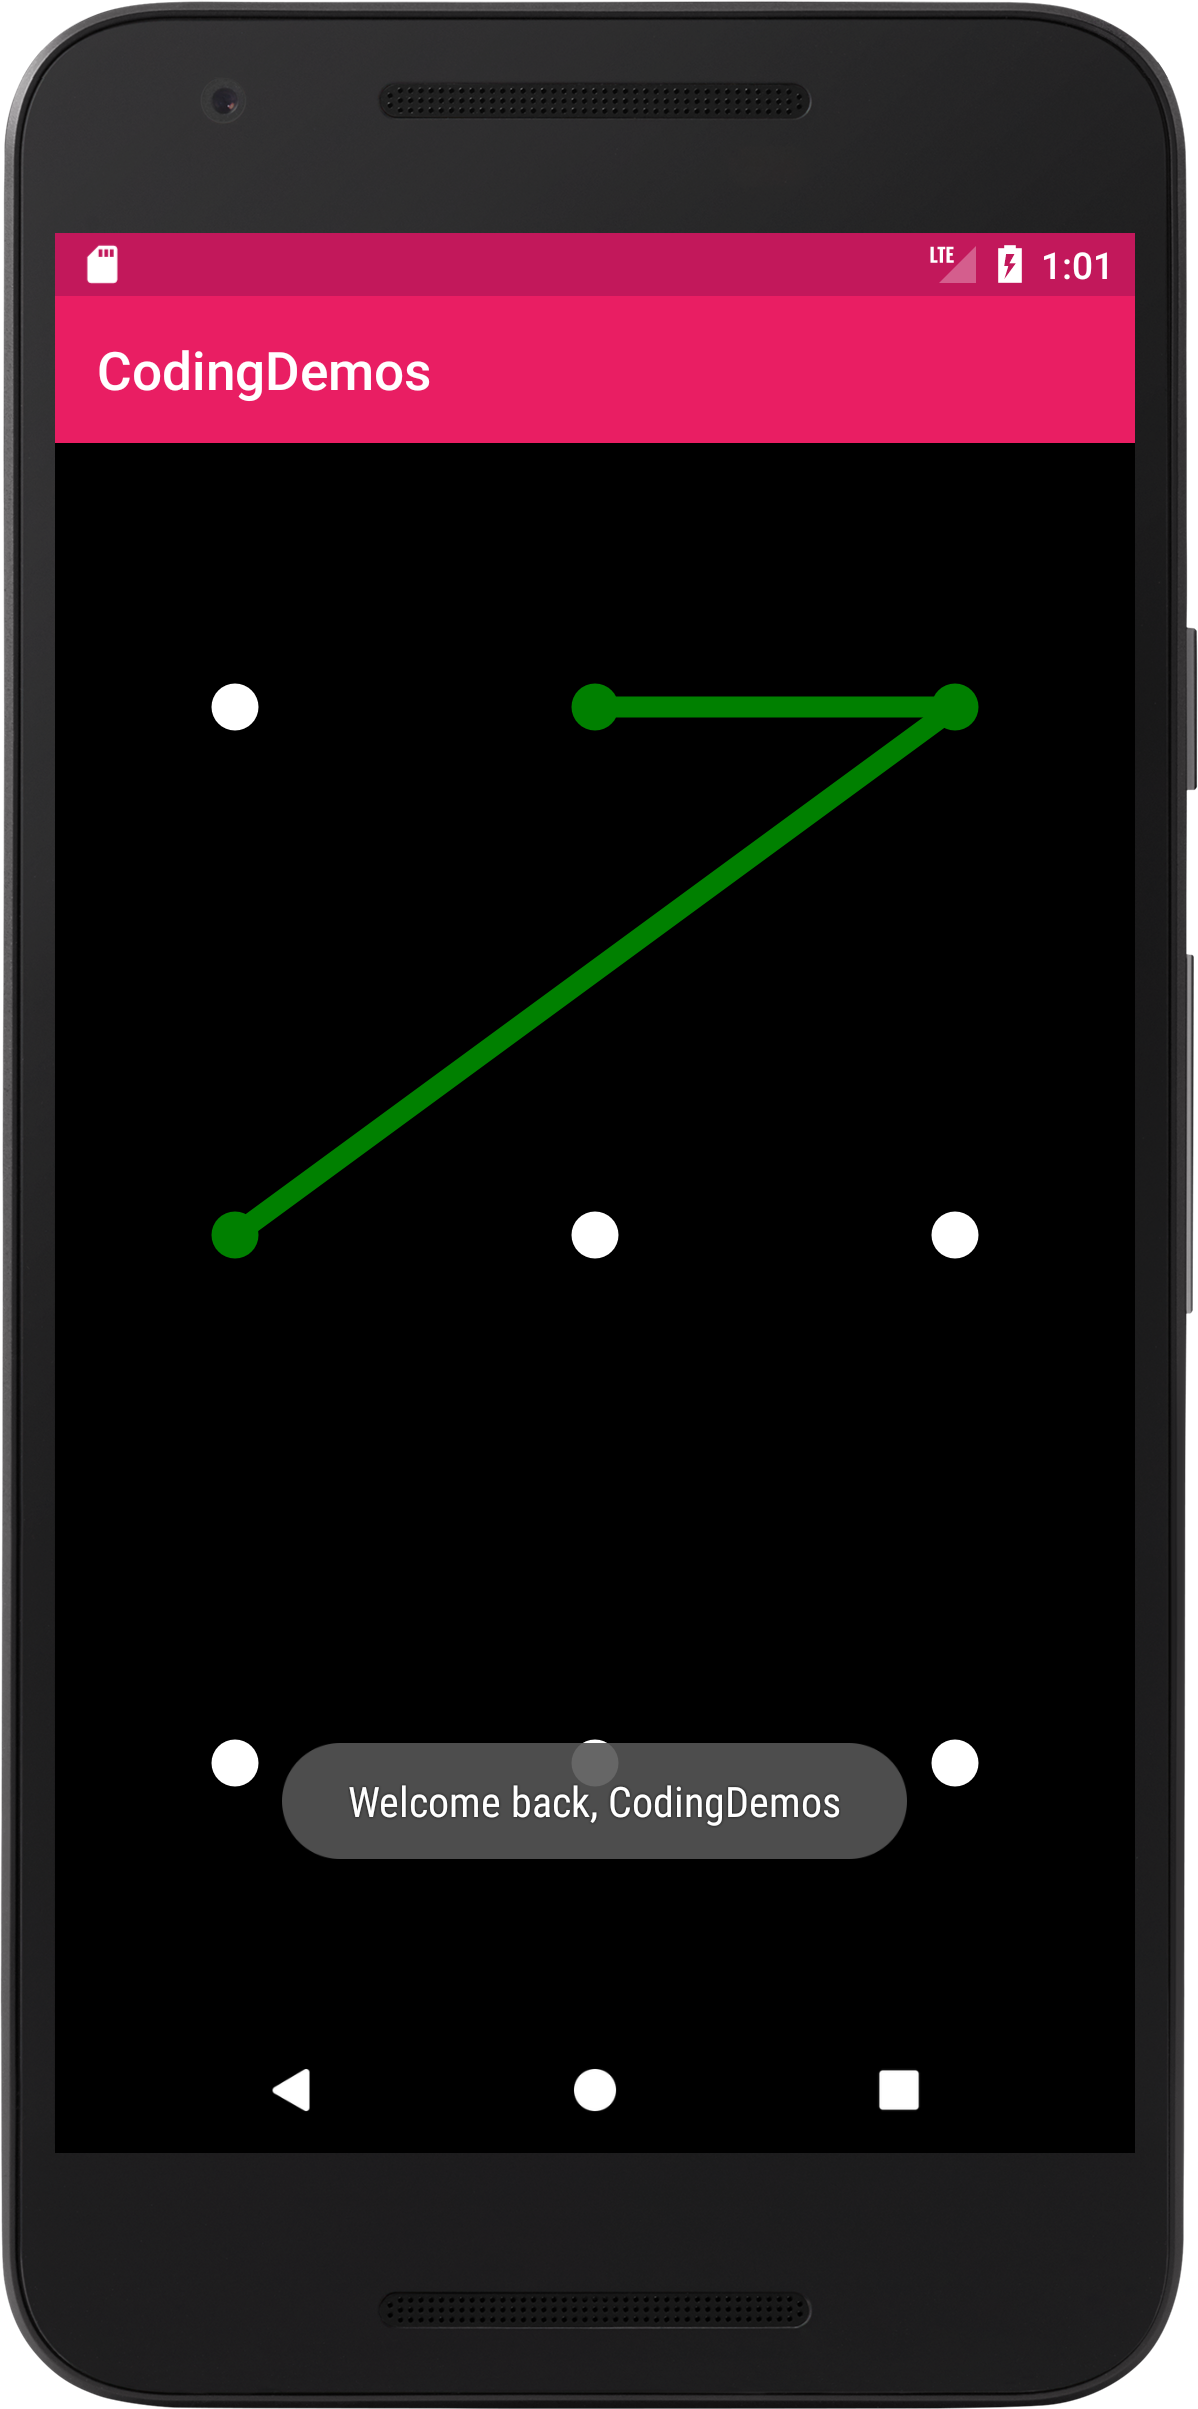 Android Pattern Lock - Add Pattern Lock View to Your App - Coding Demos